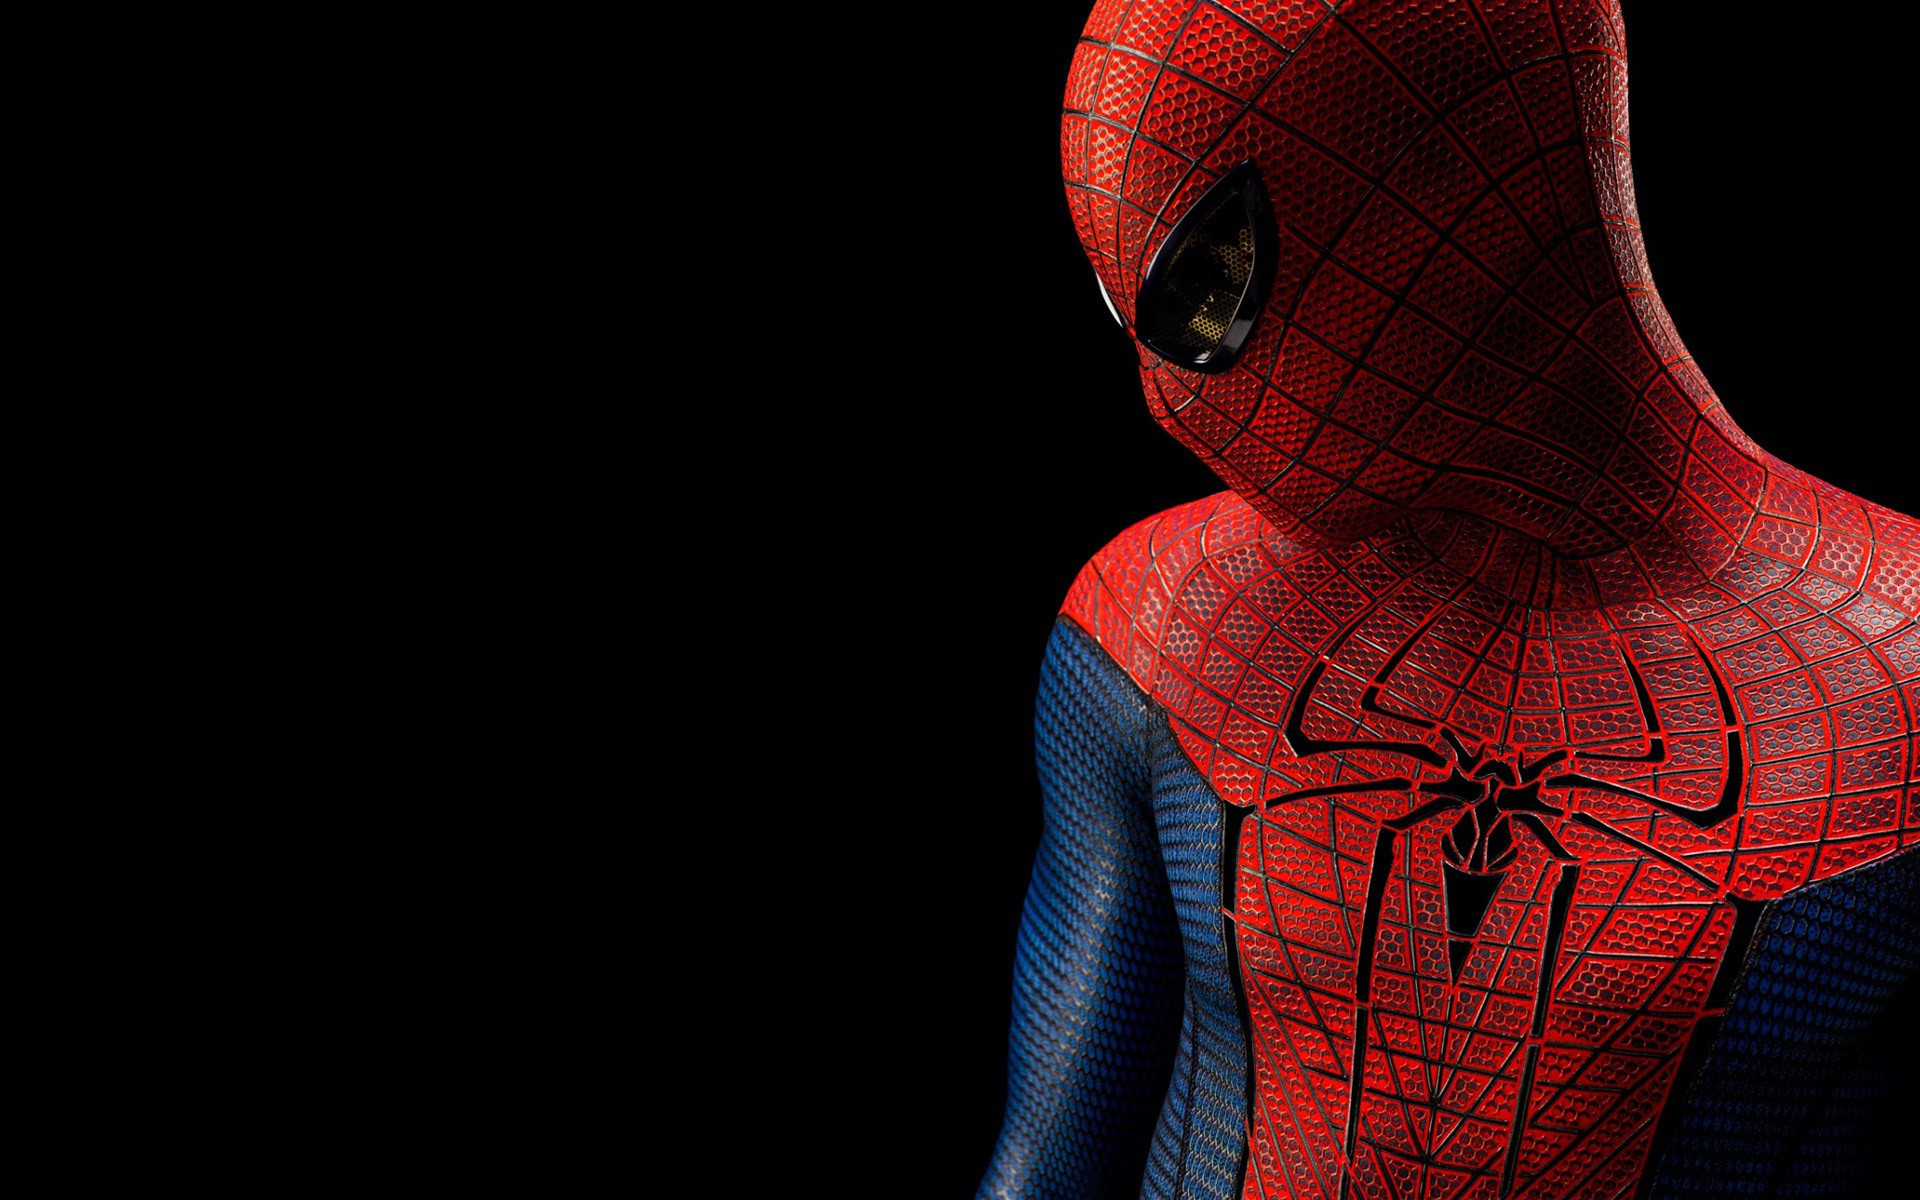 Spiderman 3 Hd Wallpapers 1080p: Spider-man Wallpaper ·① Download Free Stunning Full HD